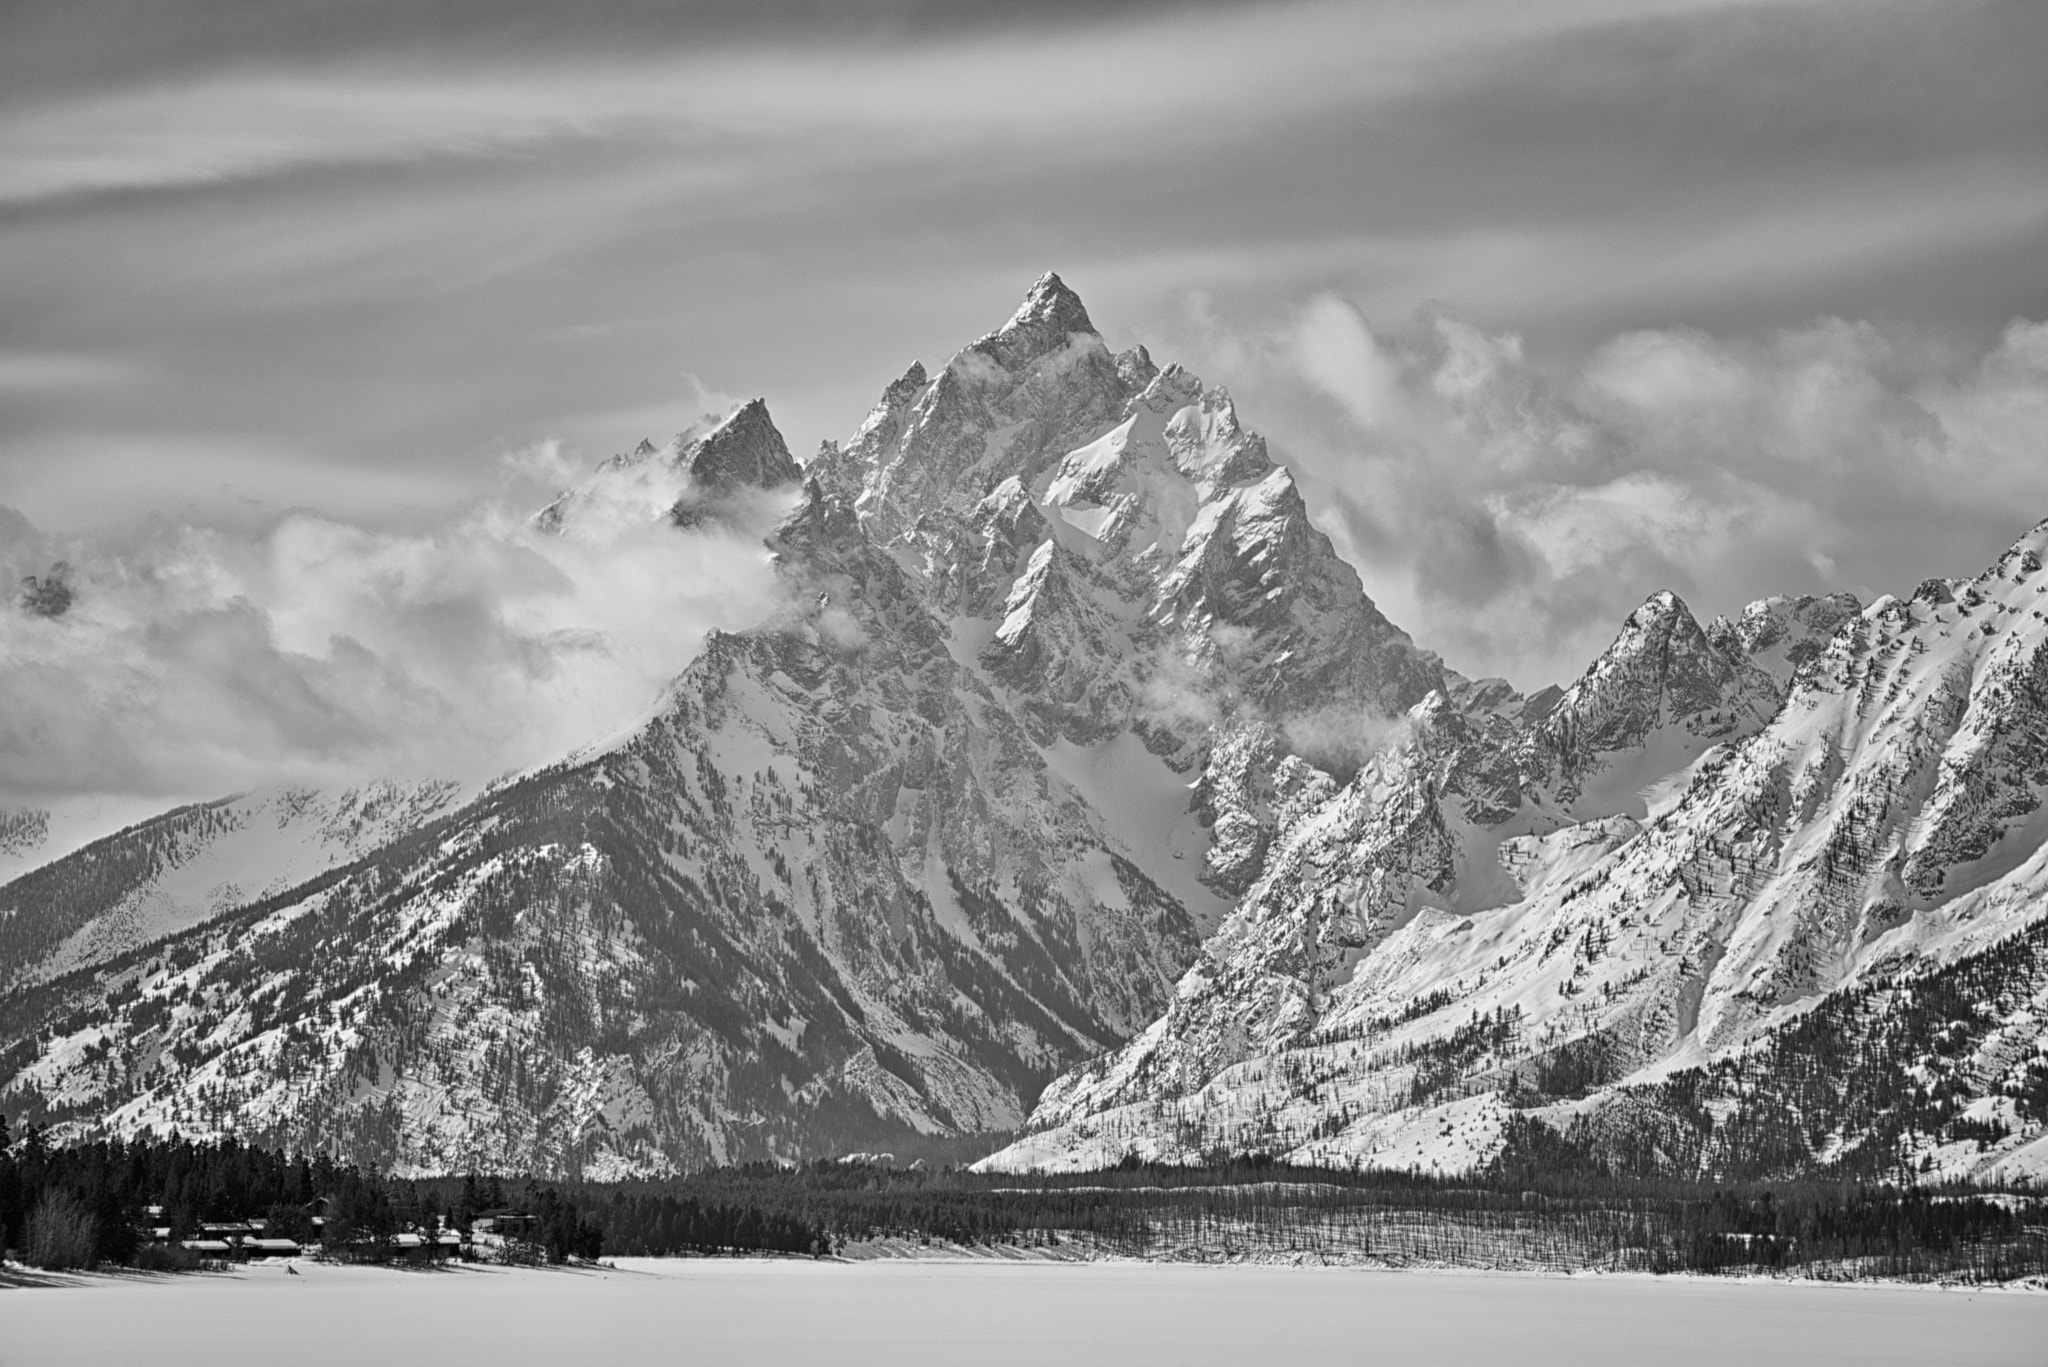 Photograph Tetons in Black and White by Stacy White on 500px